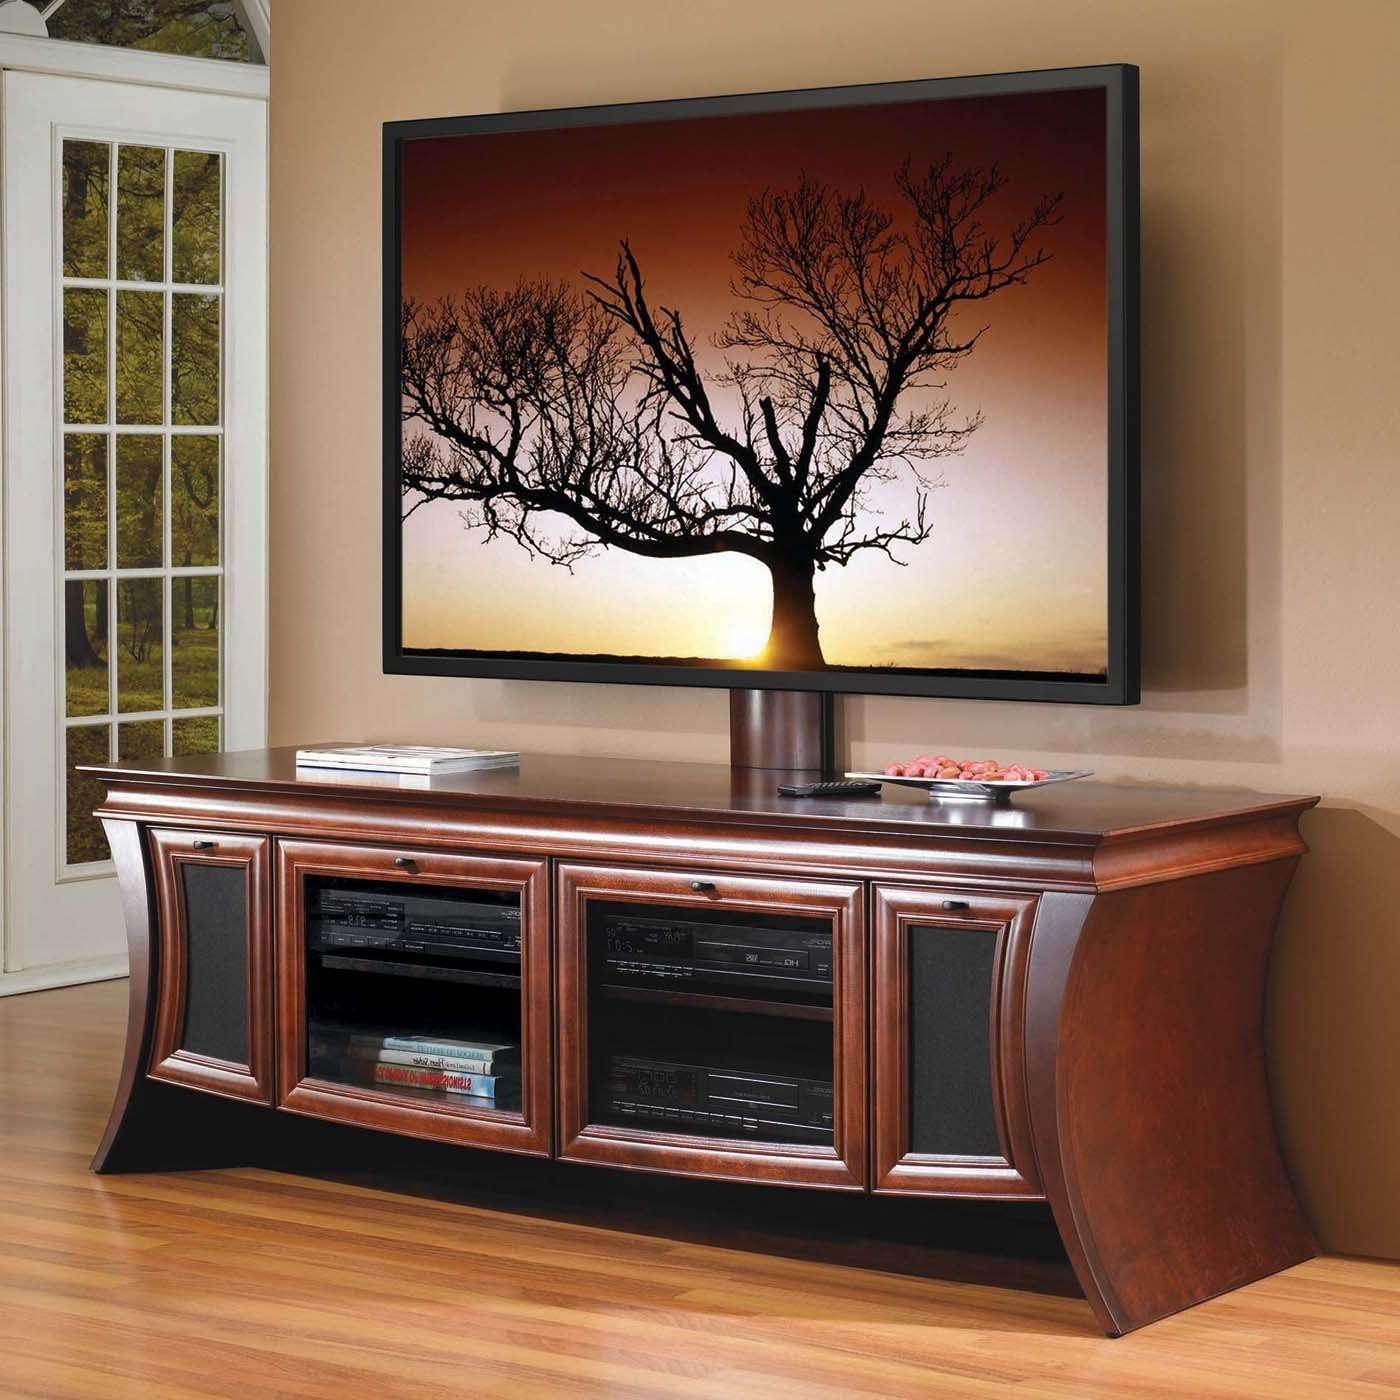 Furnitures Media Stands For Flat Screen Tvs Furniture The Best For Modern Tv Cabinets For Flat Screens (View 18 of 20)